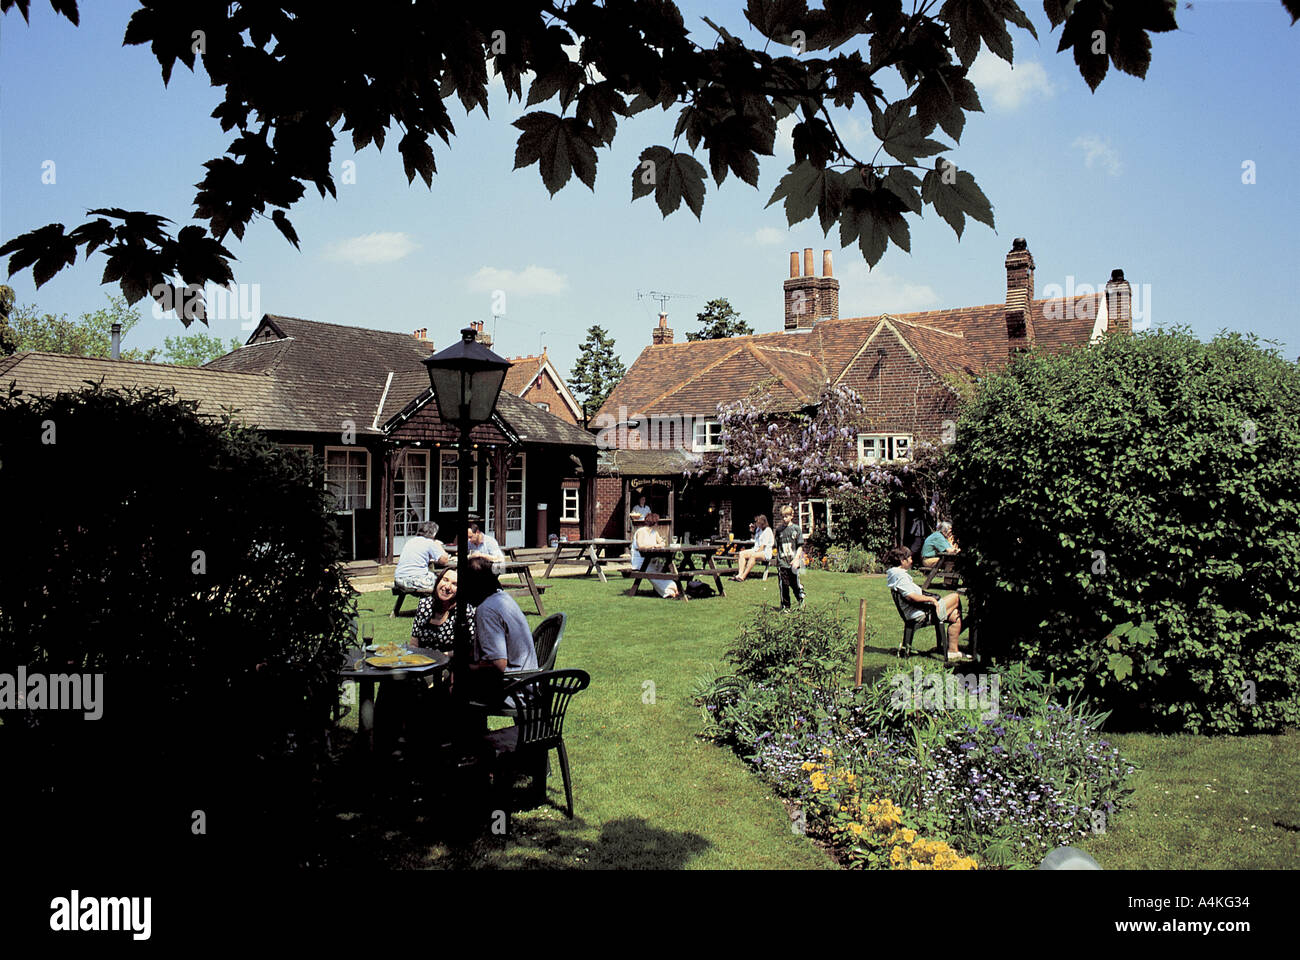 The Kings Head at Little Marlow - Stock Image